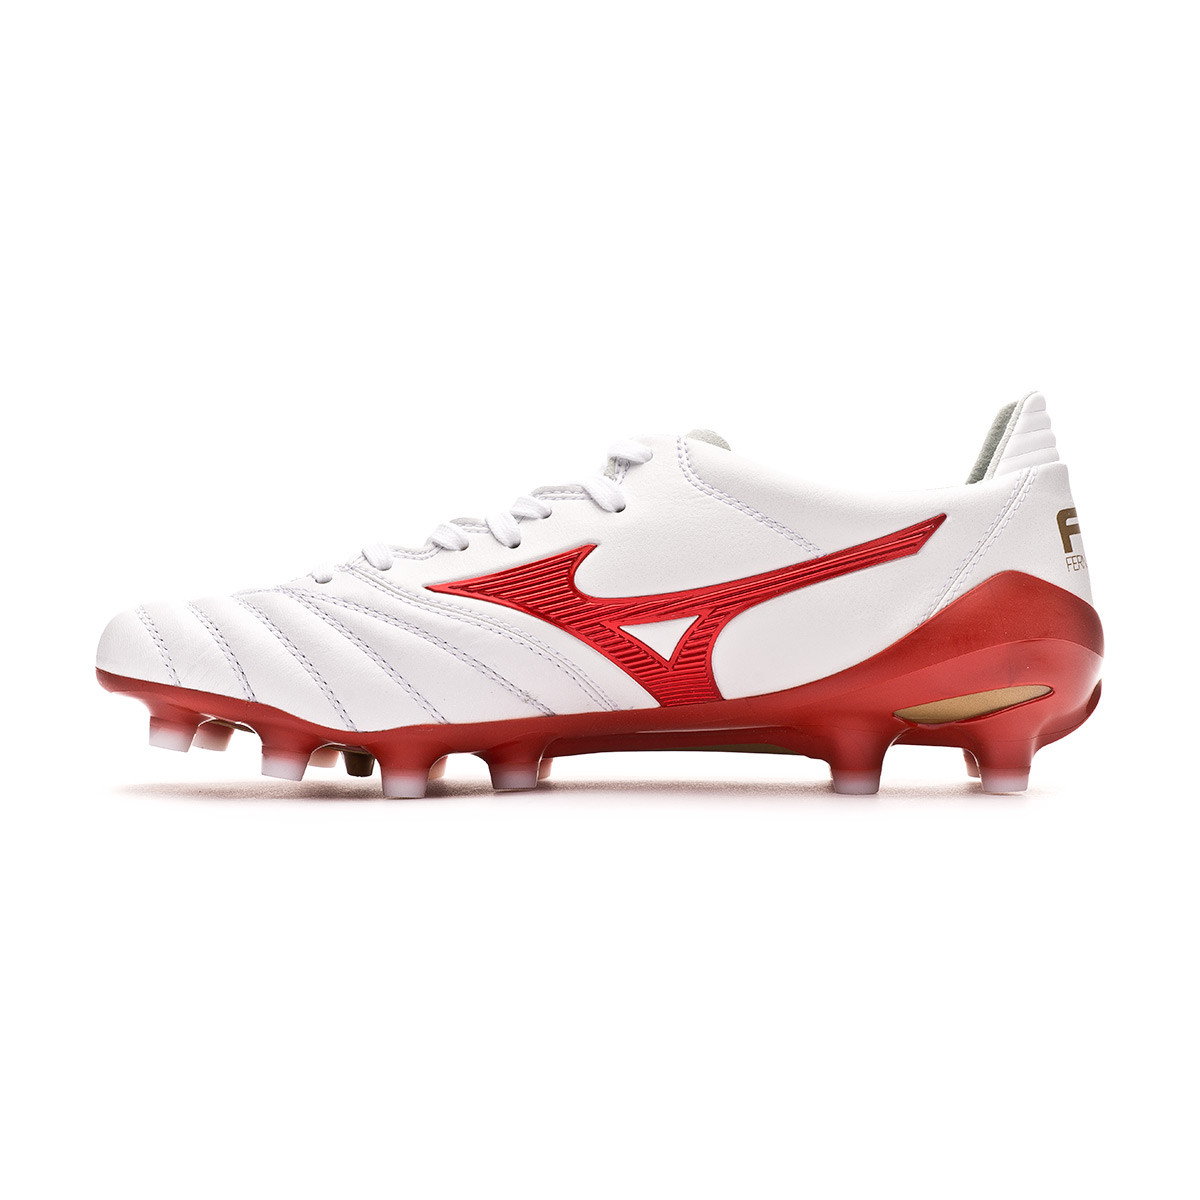 finest selection 49c90 b15b4 Football Boots Mizuno Morelia NEO Fernando Torres LTD ED White-High  risk-Gold - Nike Mercurial Superfly   Shop Nike Soccer Cleats ypsoccer.com